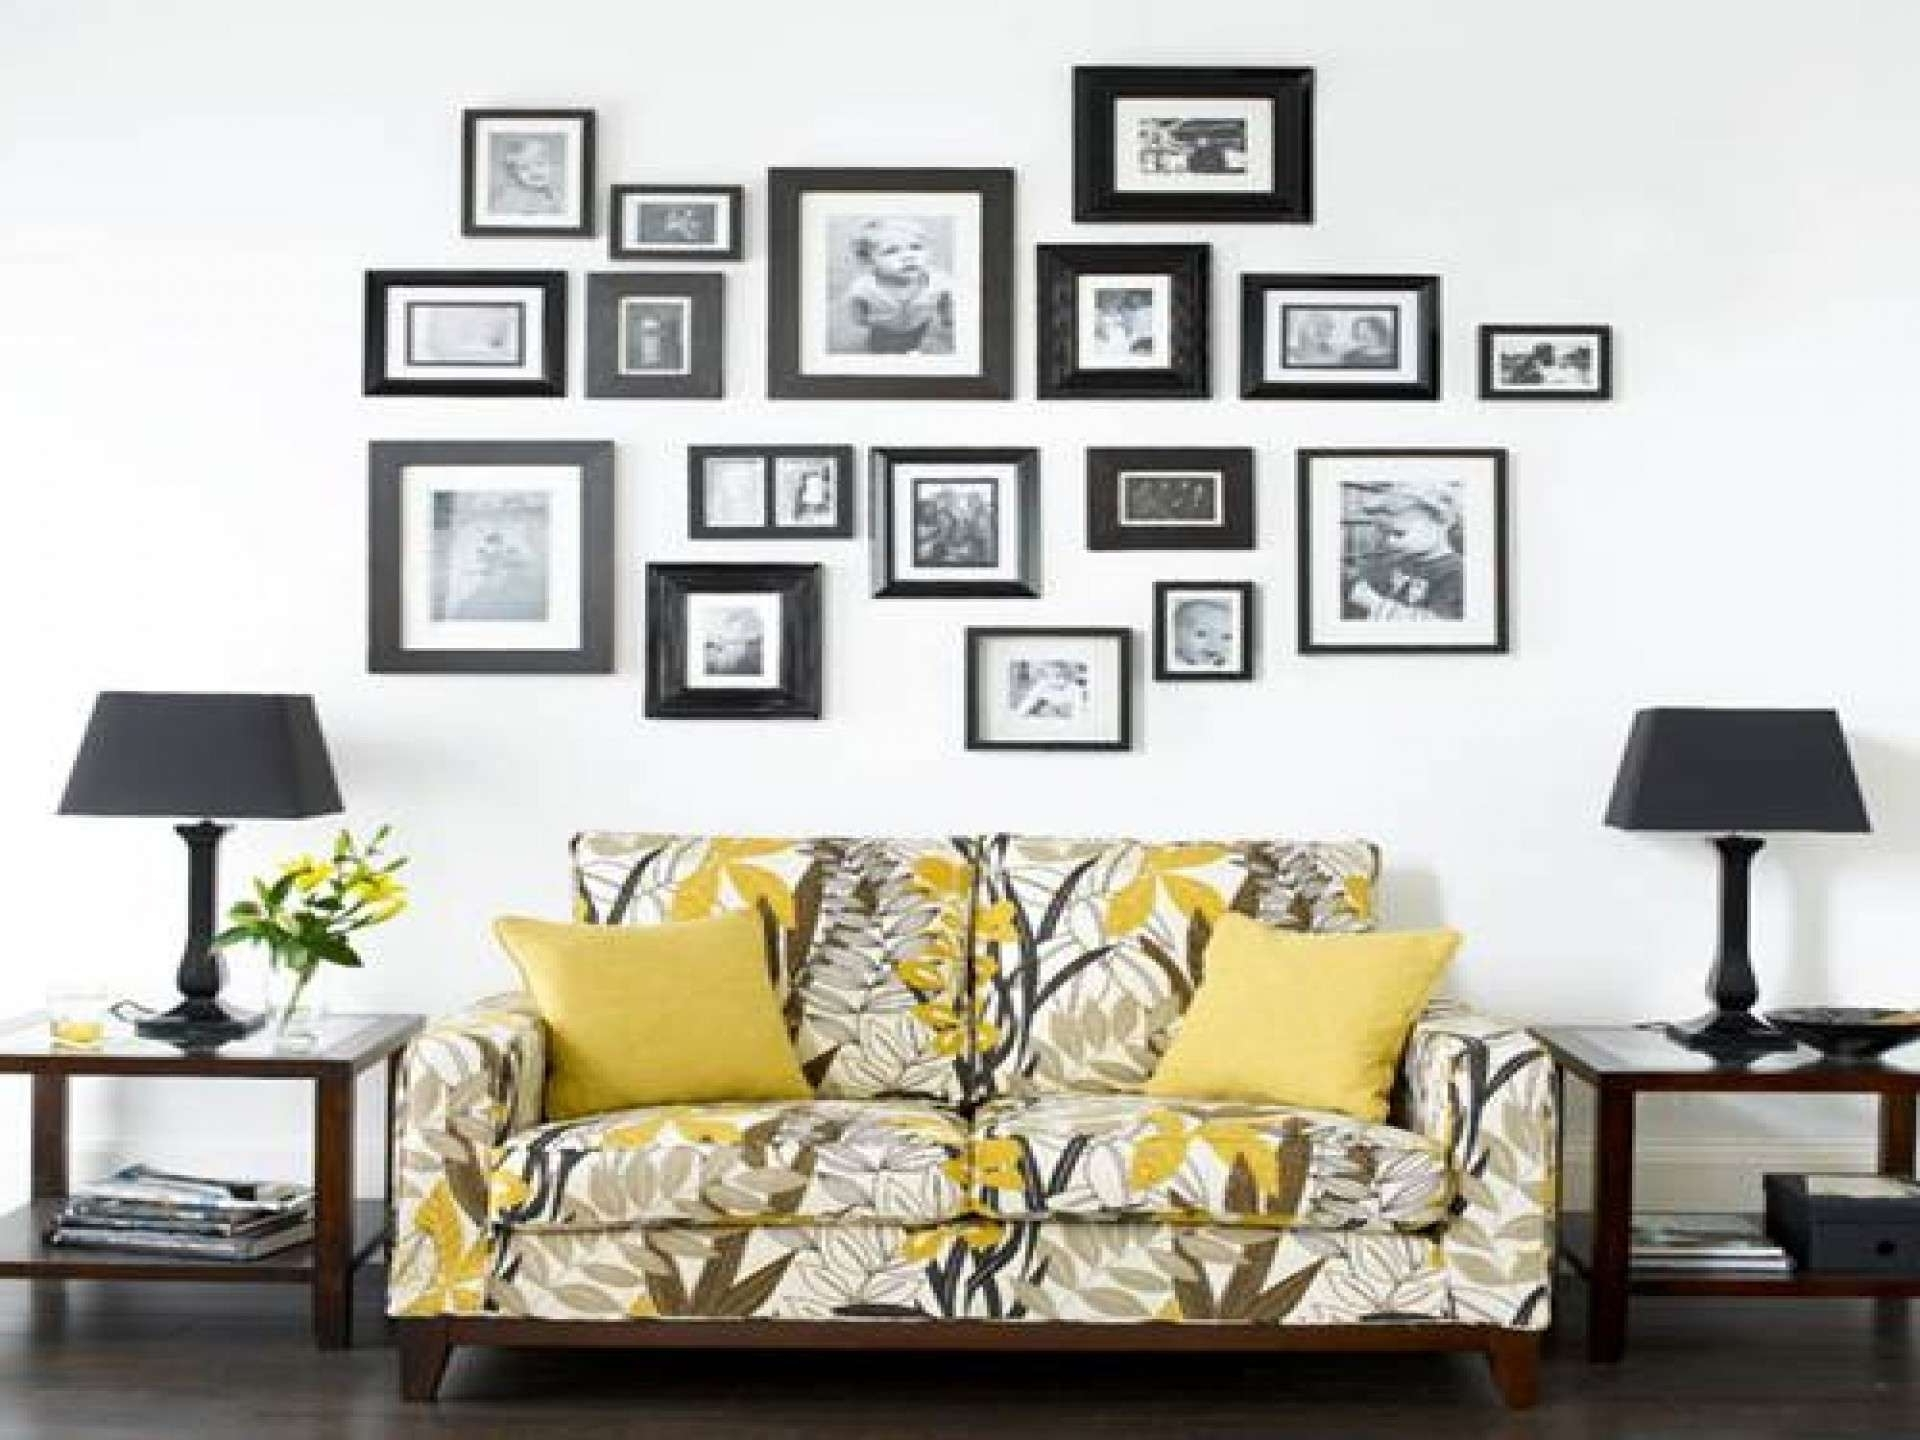 Well Known Framed Wall Art For Living Room Beautiful Remarkable Design Wall Throughout Framed Wall Art For Living Room (View 5 of 20)